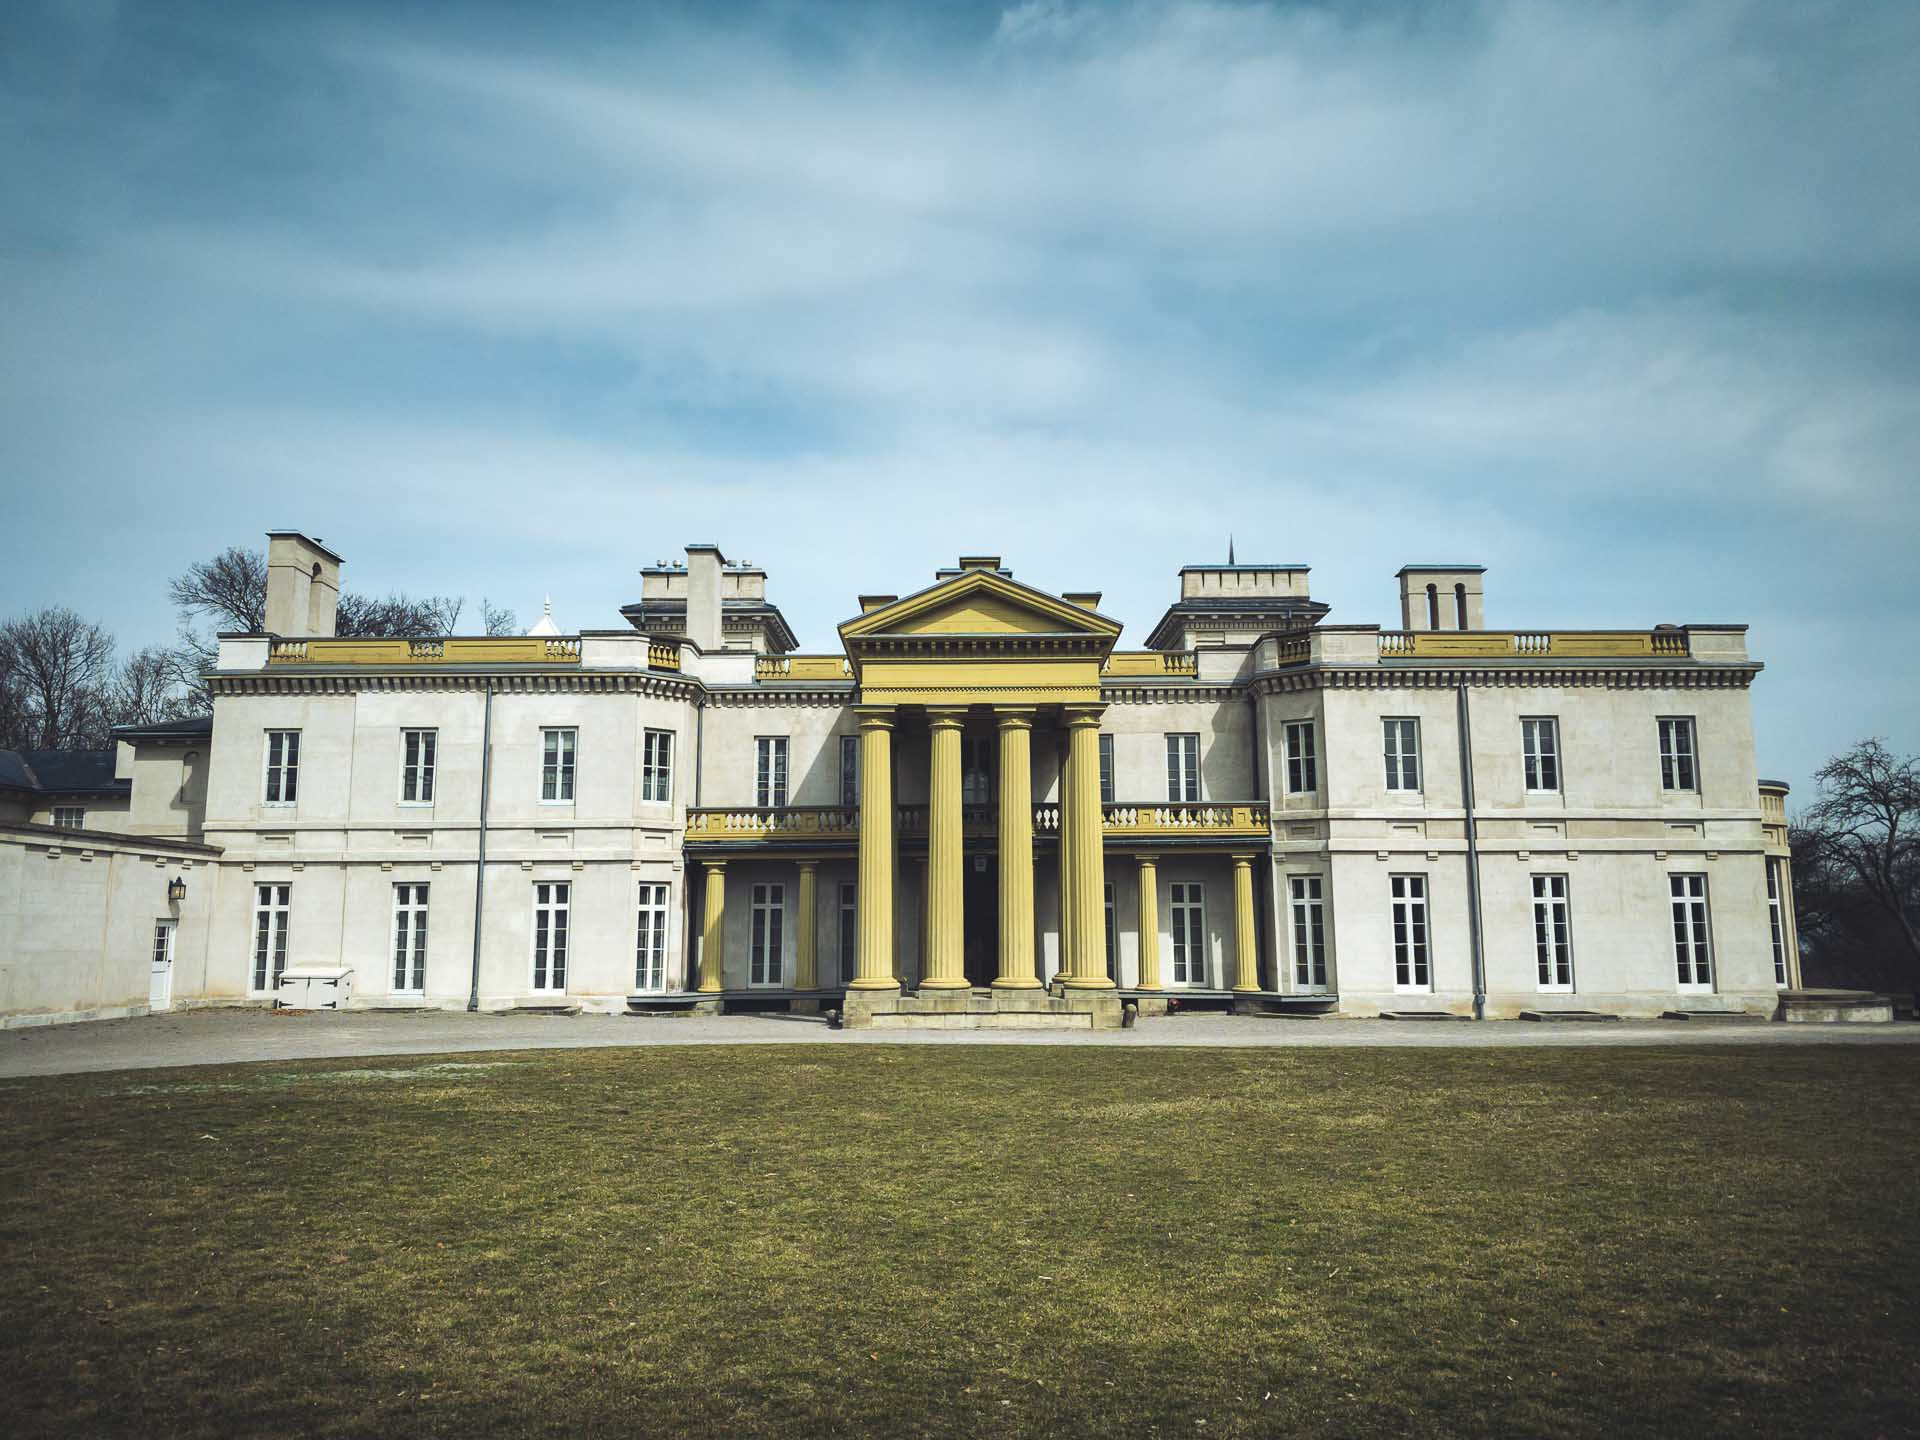 things to do in hamilton dundurn castle